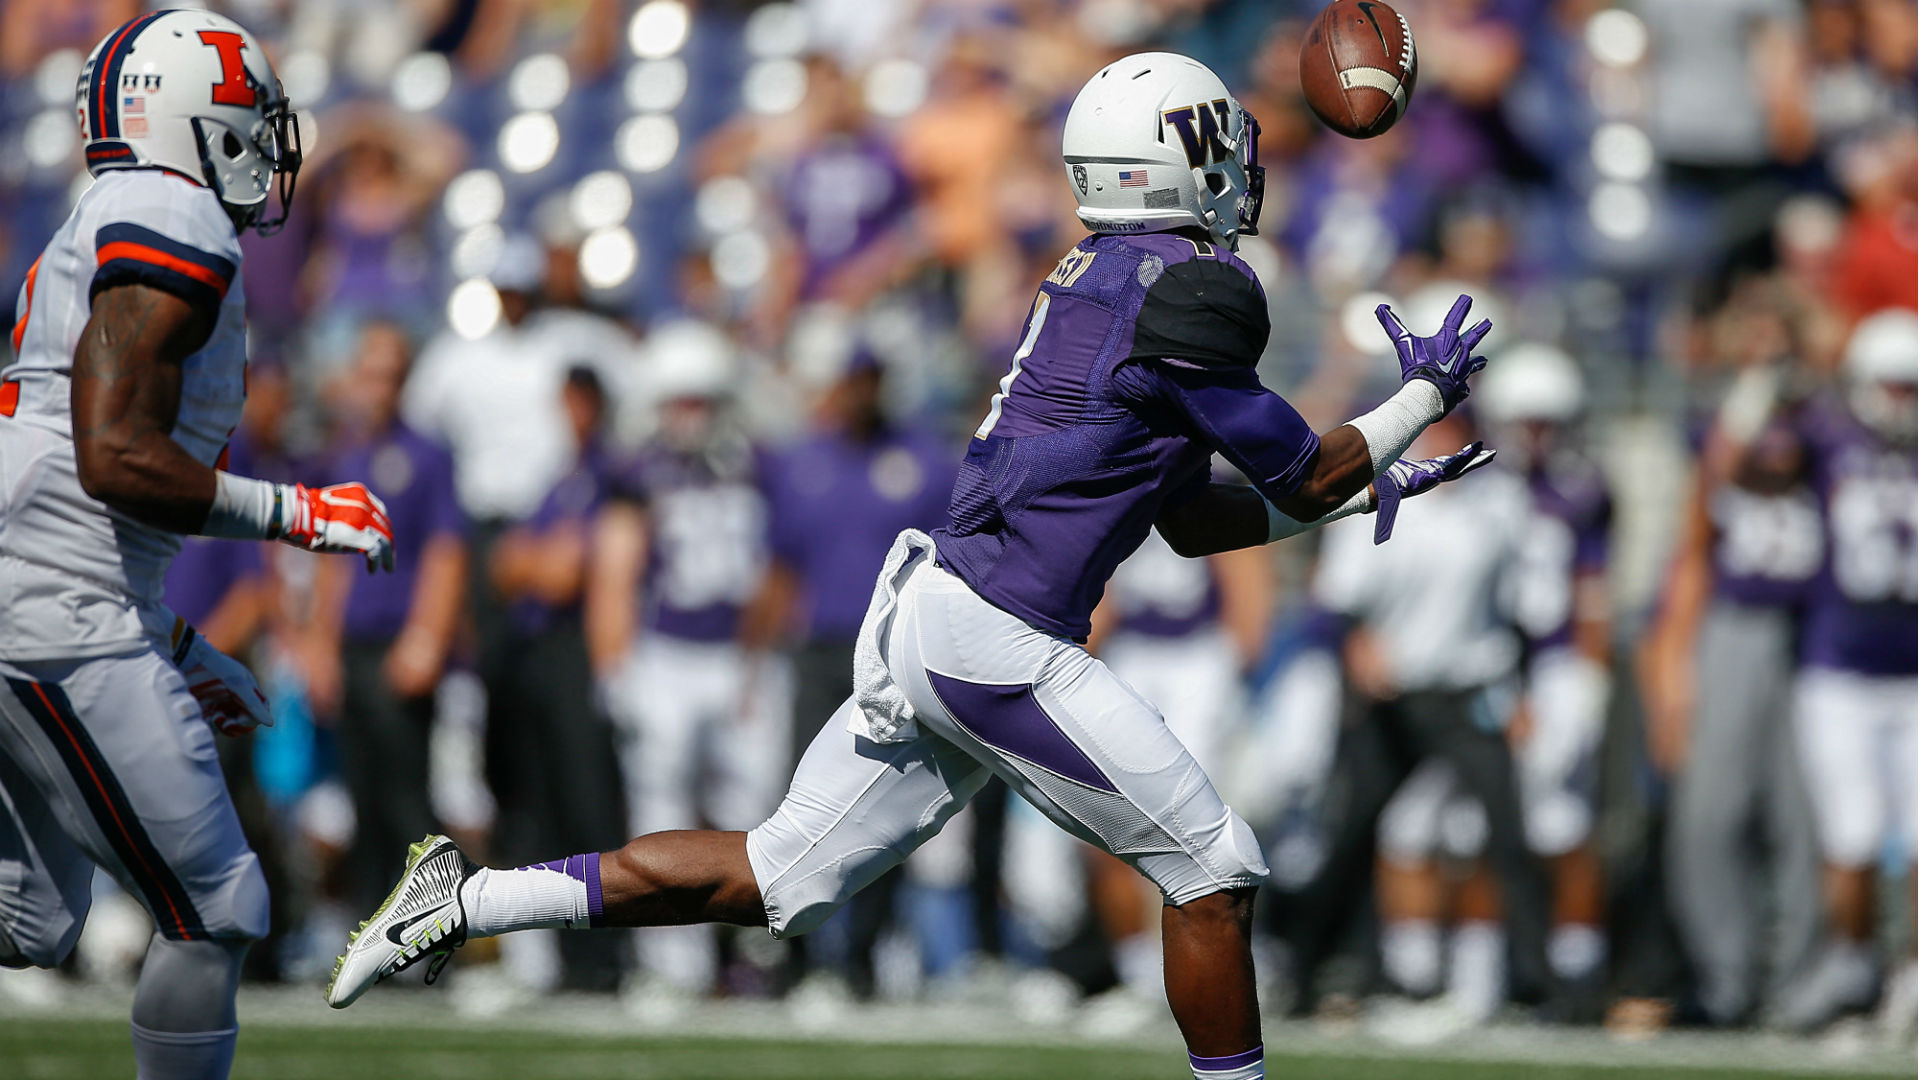 College football lines and leans your week 5 betting guide the